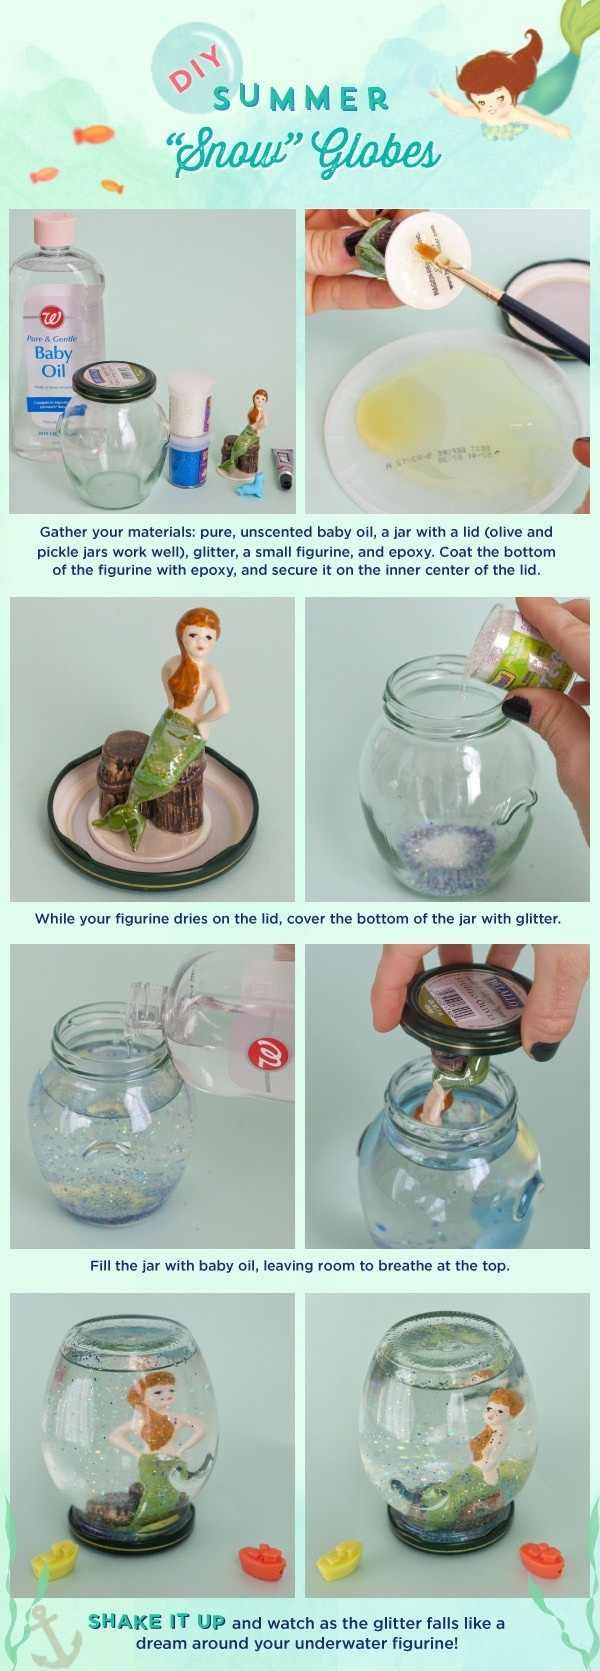 How to make your own snow globe! Cool!